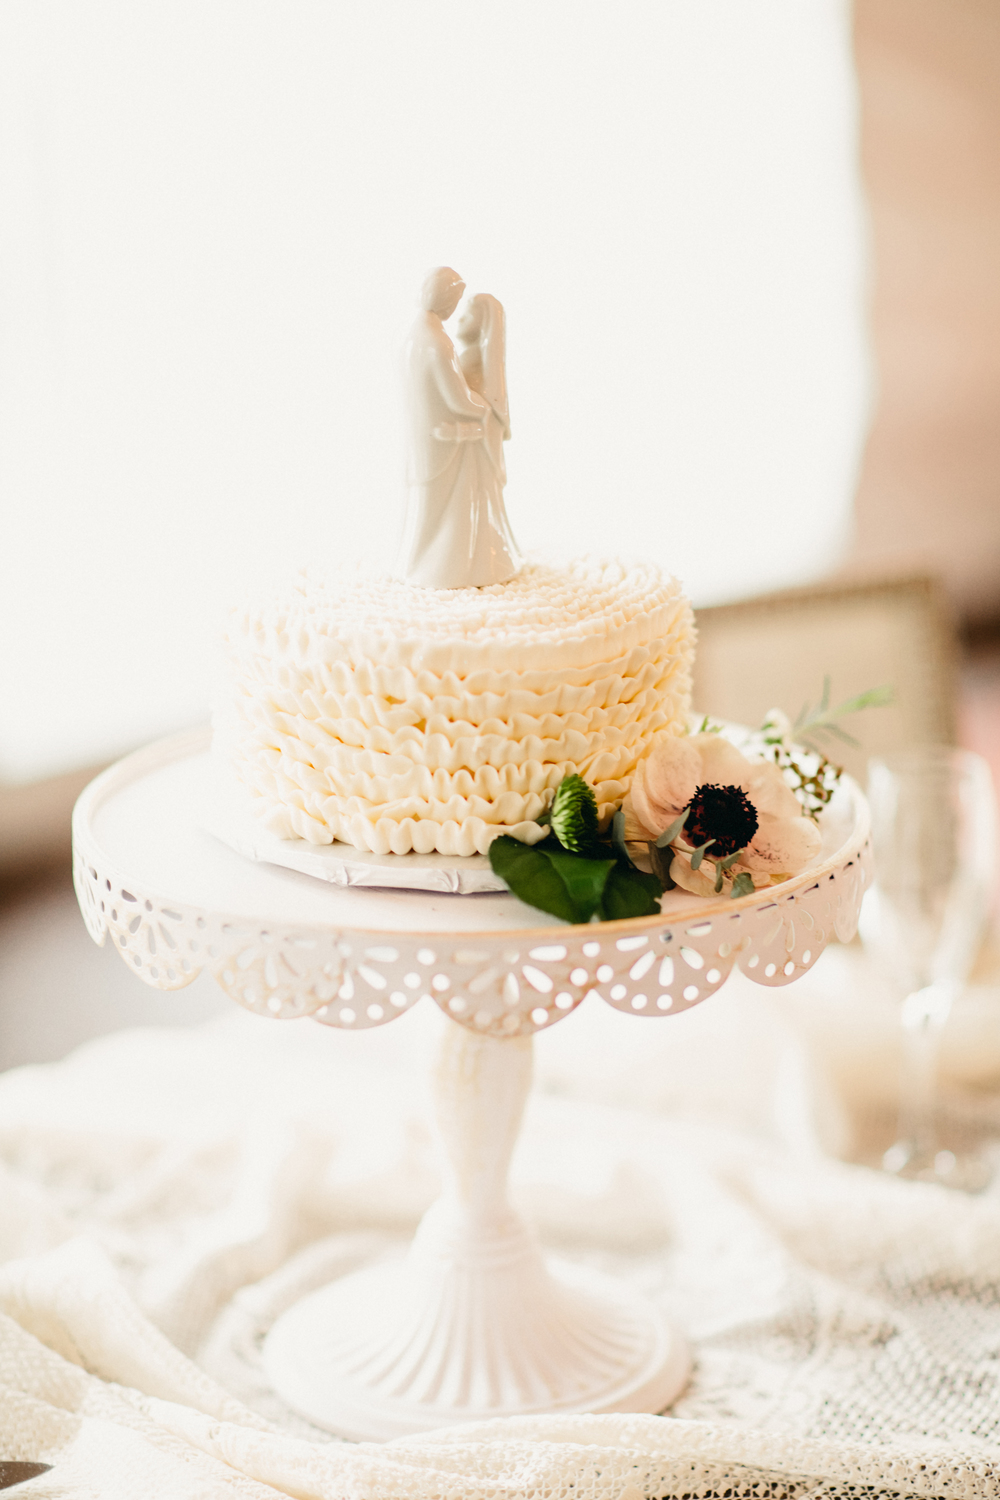 A wedding cake doesn't need to be sky-high!  A single-tier ruffled cake is ideal for elopements, smaller wedding receptions, or couples wanting a designer cake for a fraction of the cost.   Photo:  Anderson Shore Photography